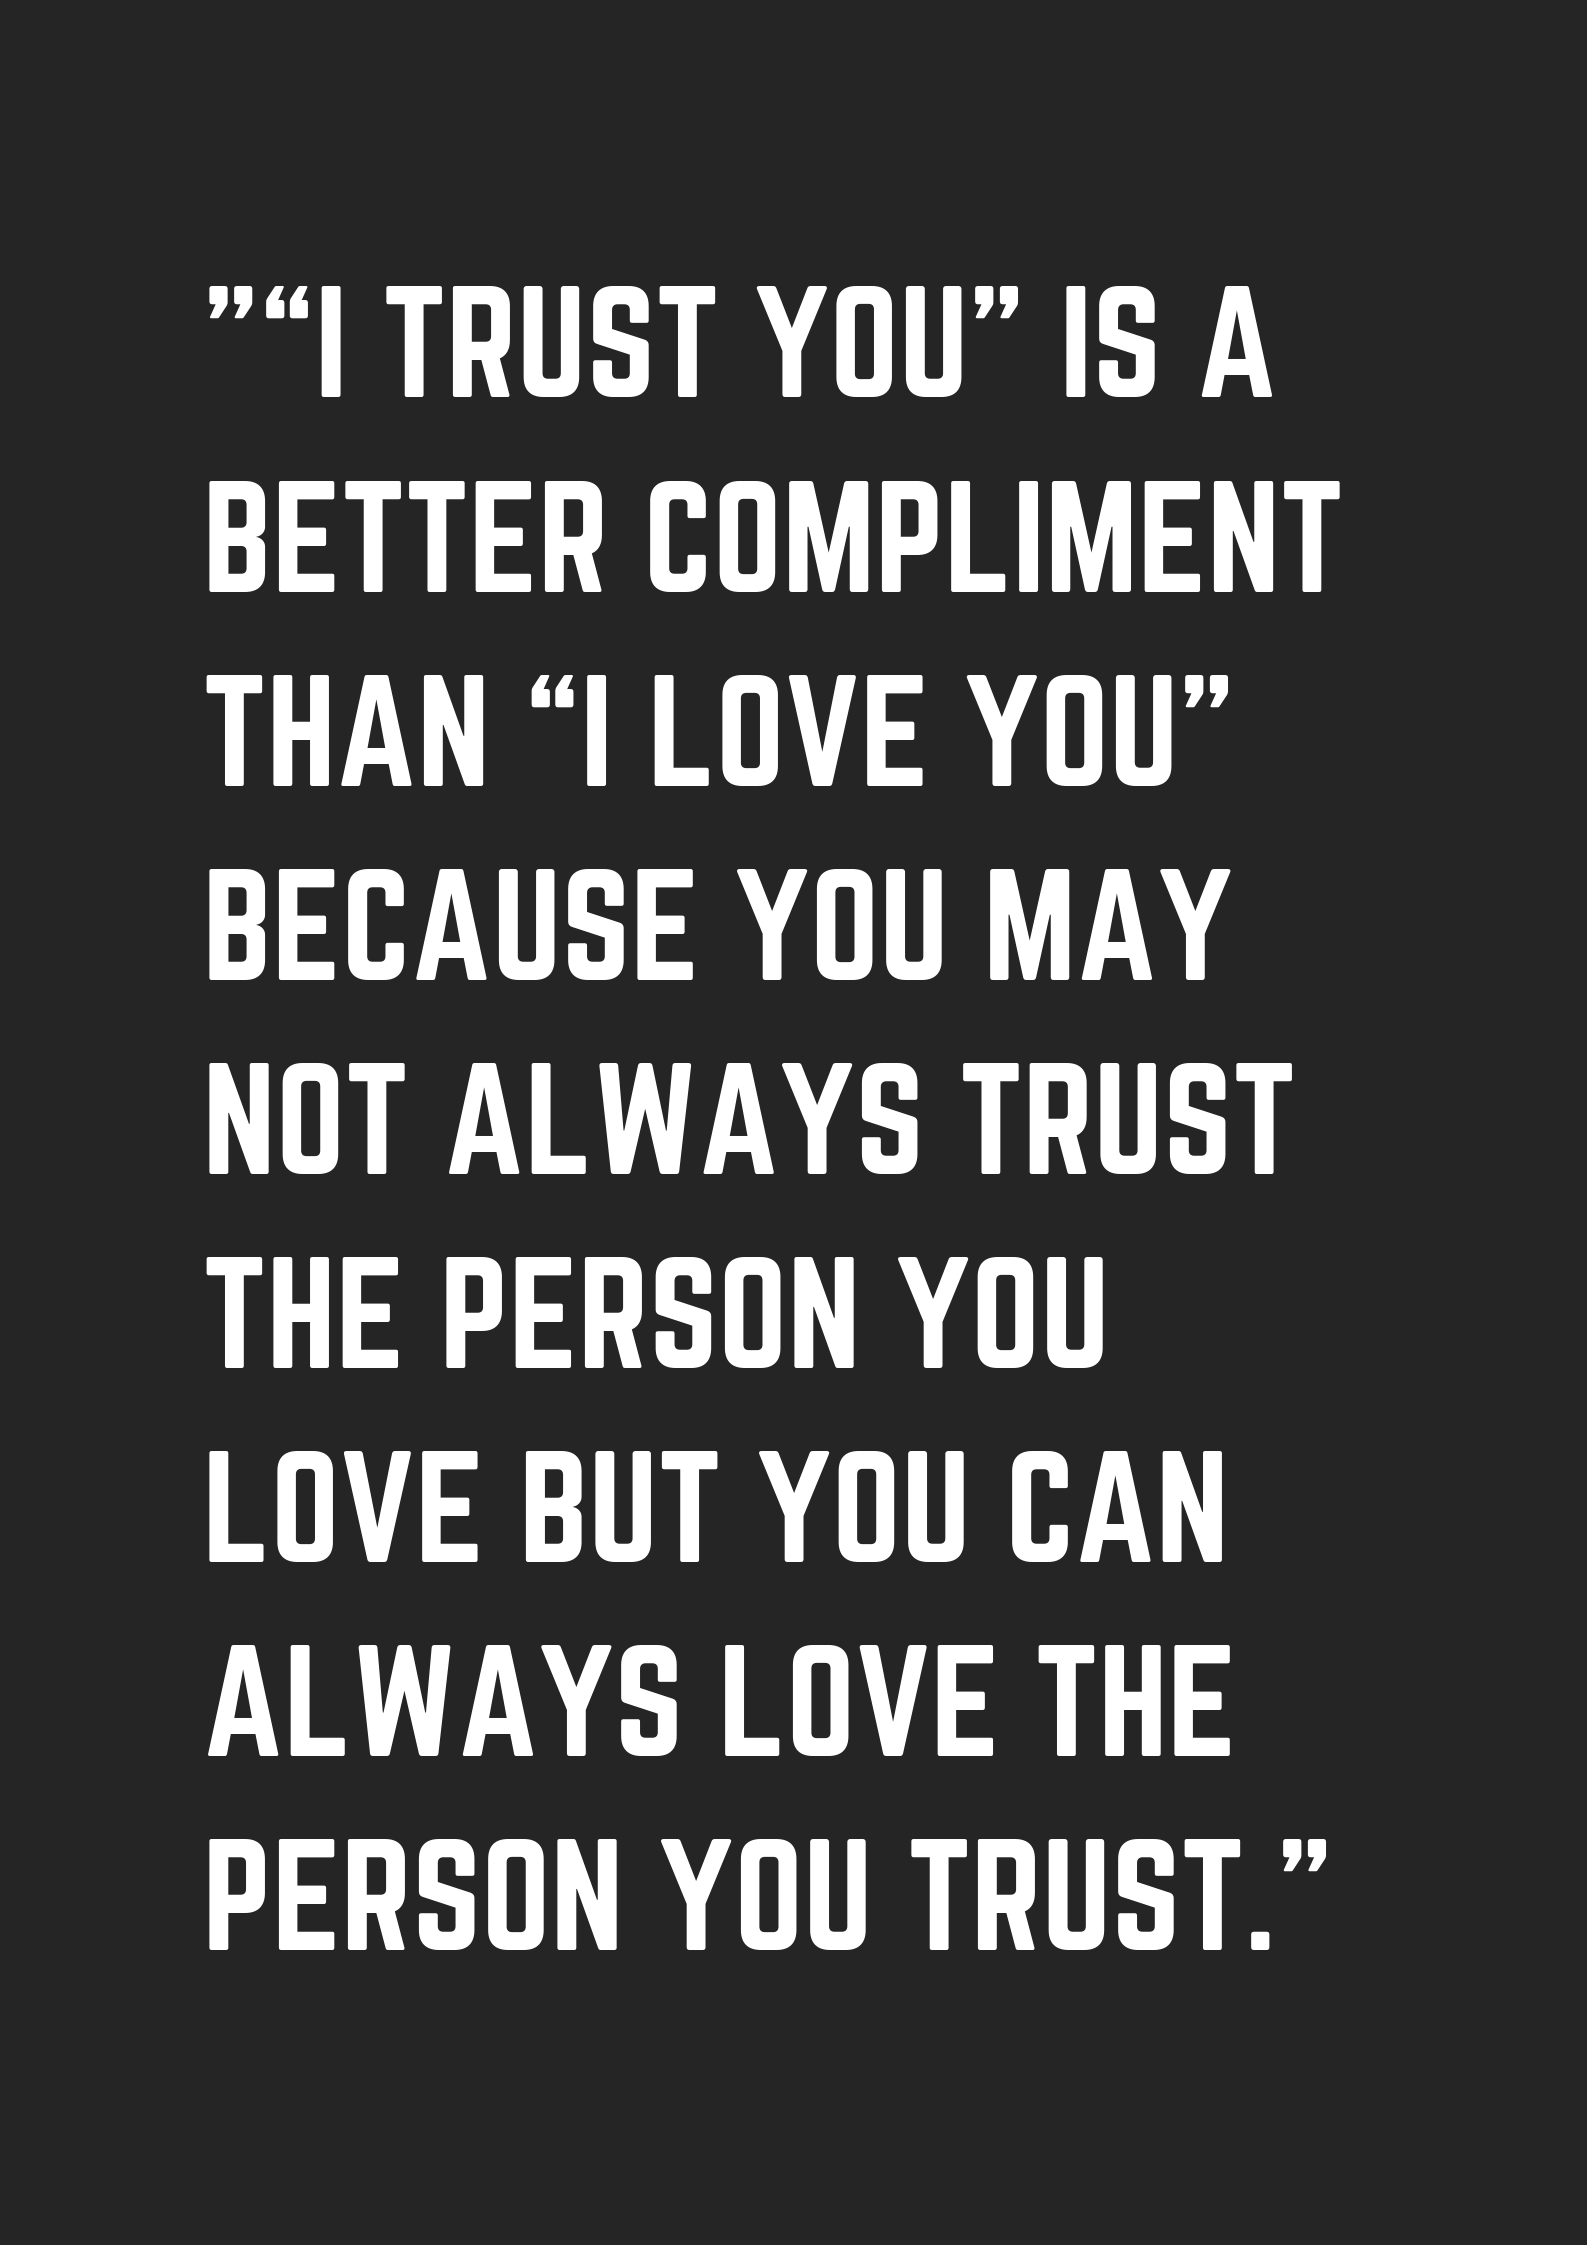 35 Relationship Quotes And Sayings For Her Relationship Quotes For Him True Quotes Good Relationship Quotes